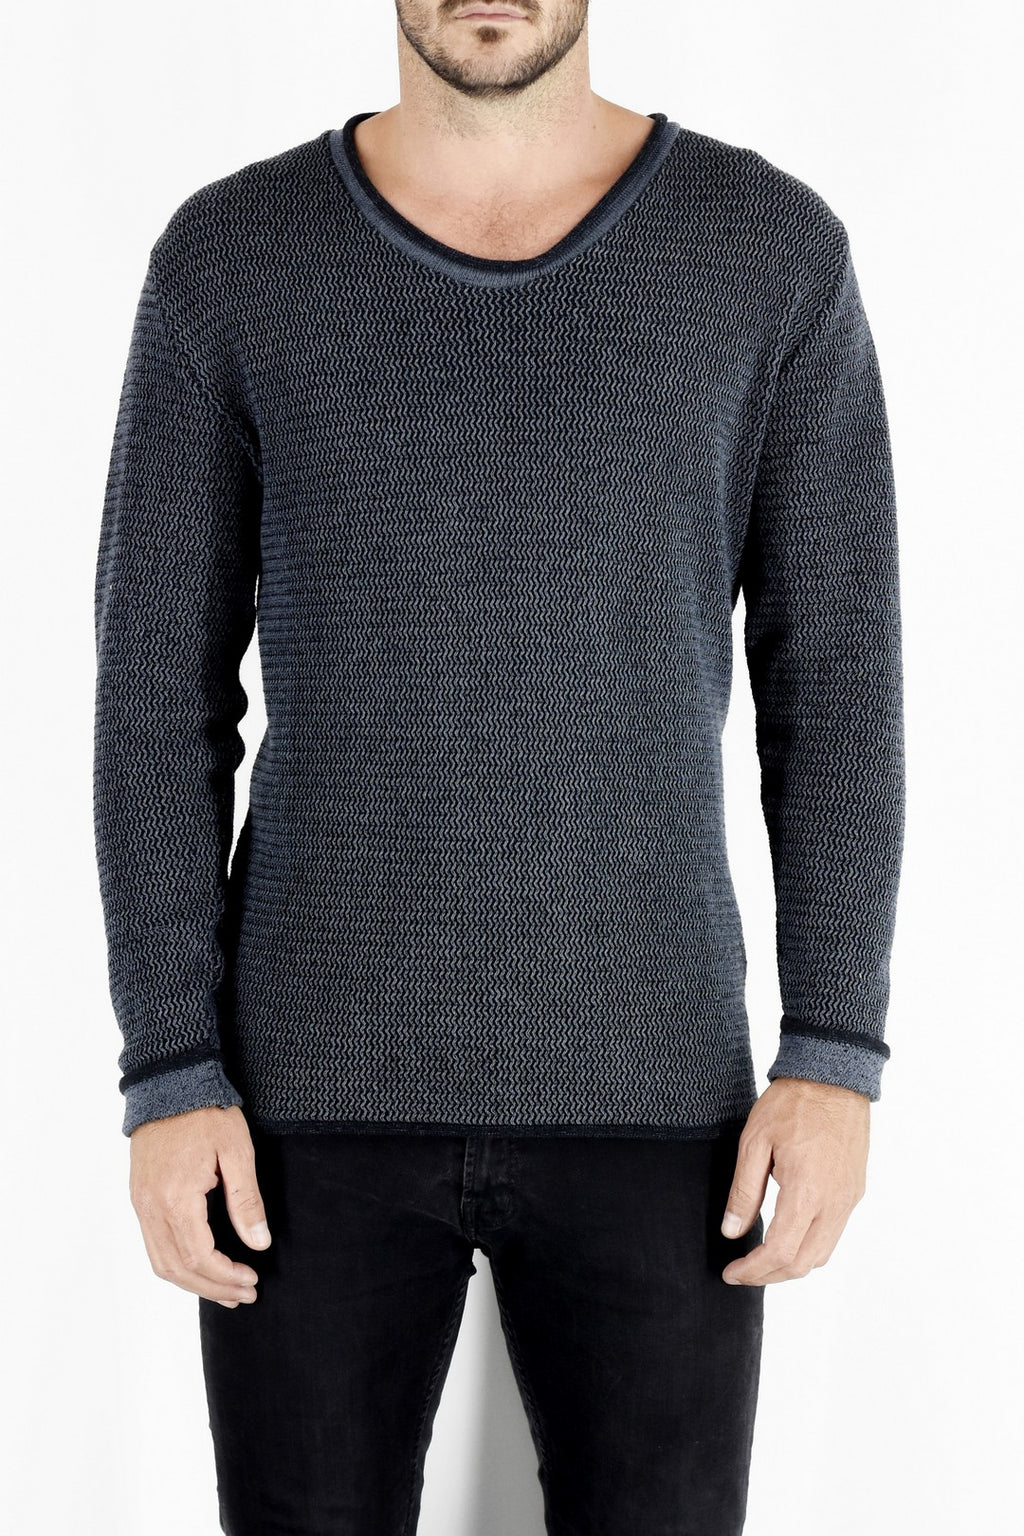 Mens Knitwear Grey Marl Jersey/Jumper with Side Zips ZG5158